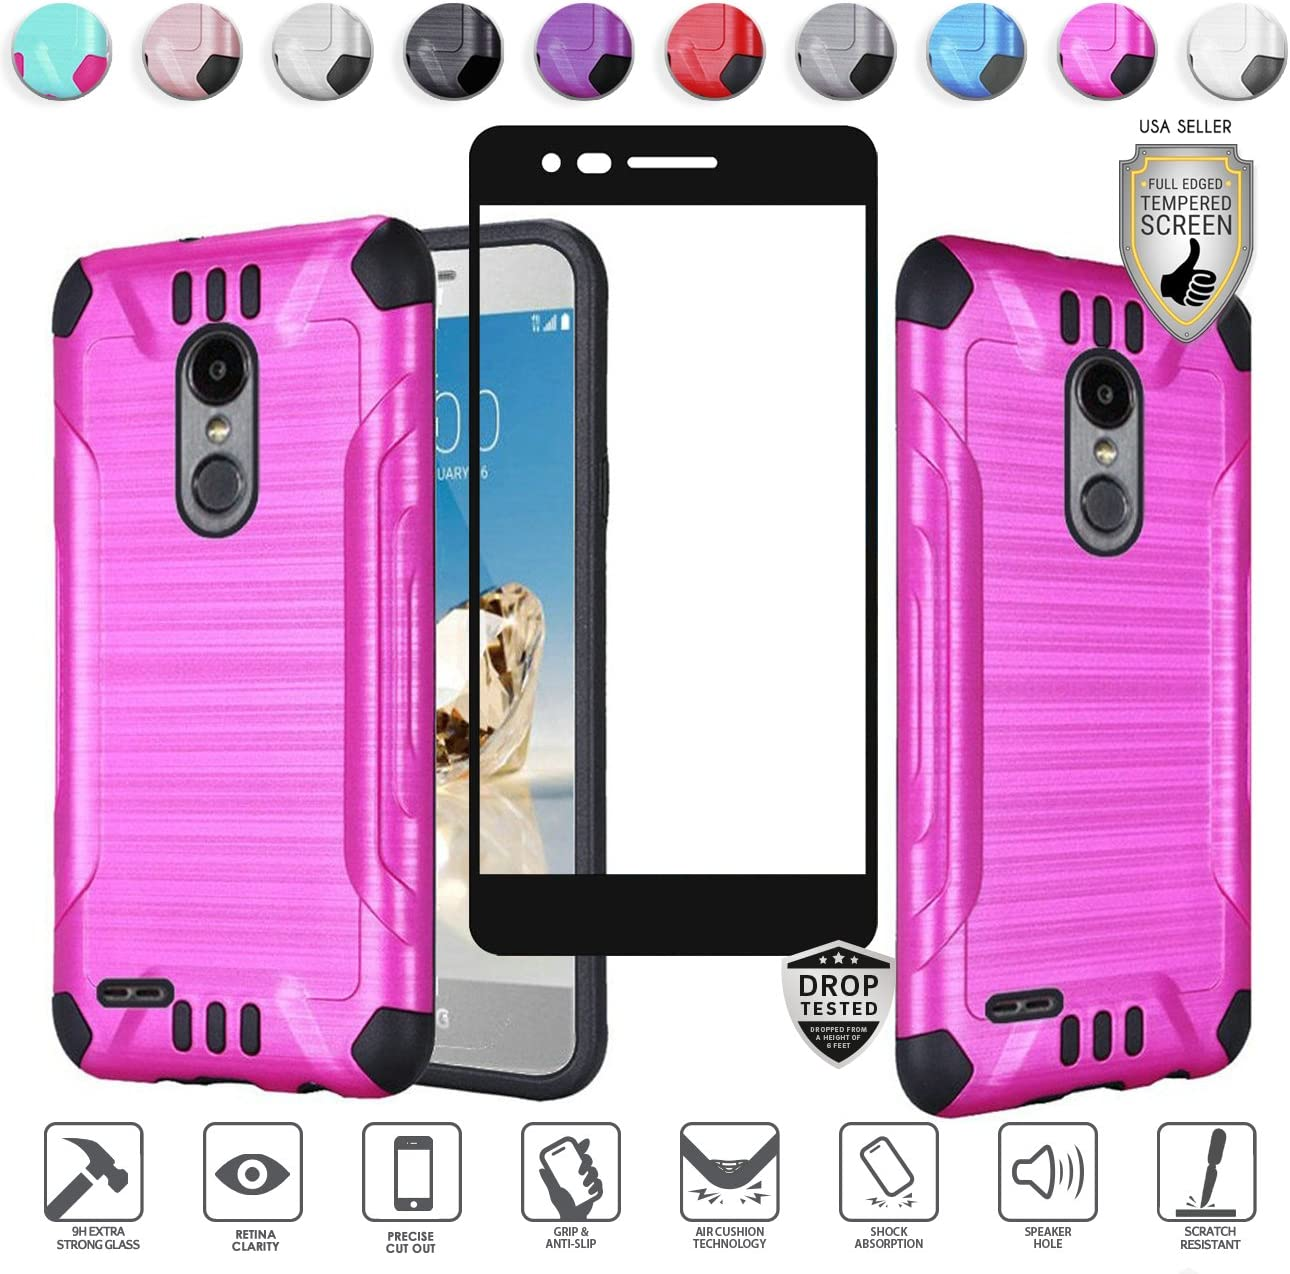 LG Fortune 2 Case, Aristo 2 Case, Zone 4 Case, Risio 3 Case, Rebel 3 Case, Tribute Dynasty Case, with Tempered Screen Protector, Brushed Design Tough Hybrid [Shockproof] Armor (Hot Pink)